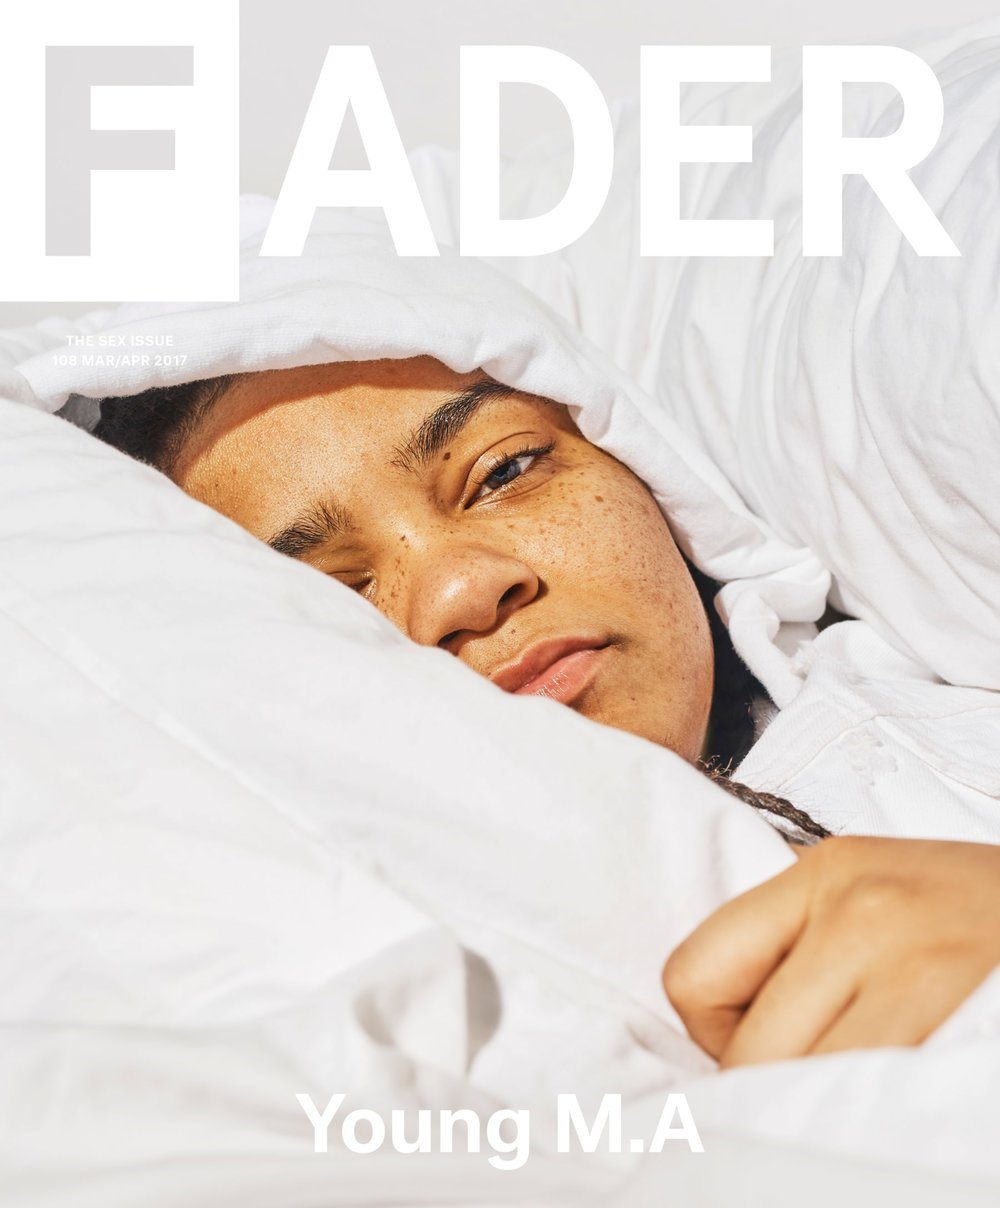 YOUNG MA COVER